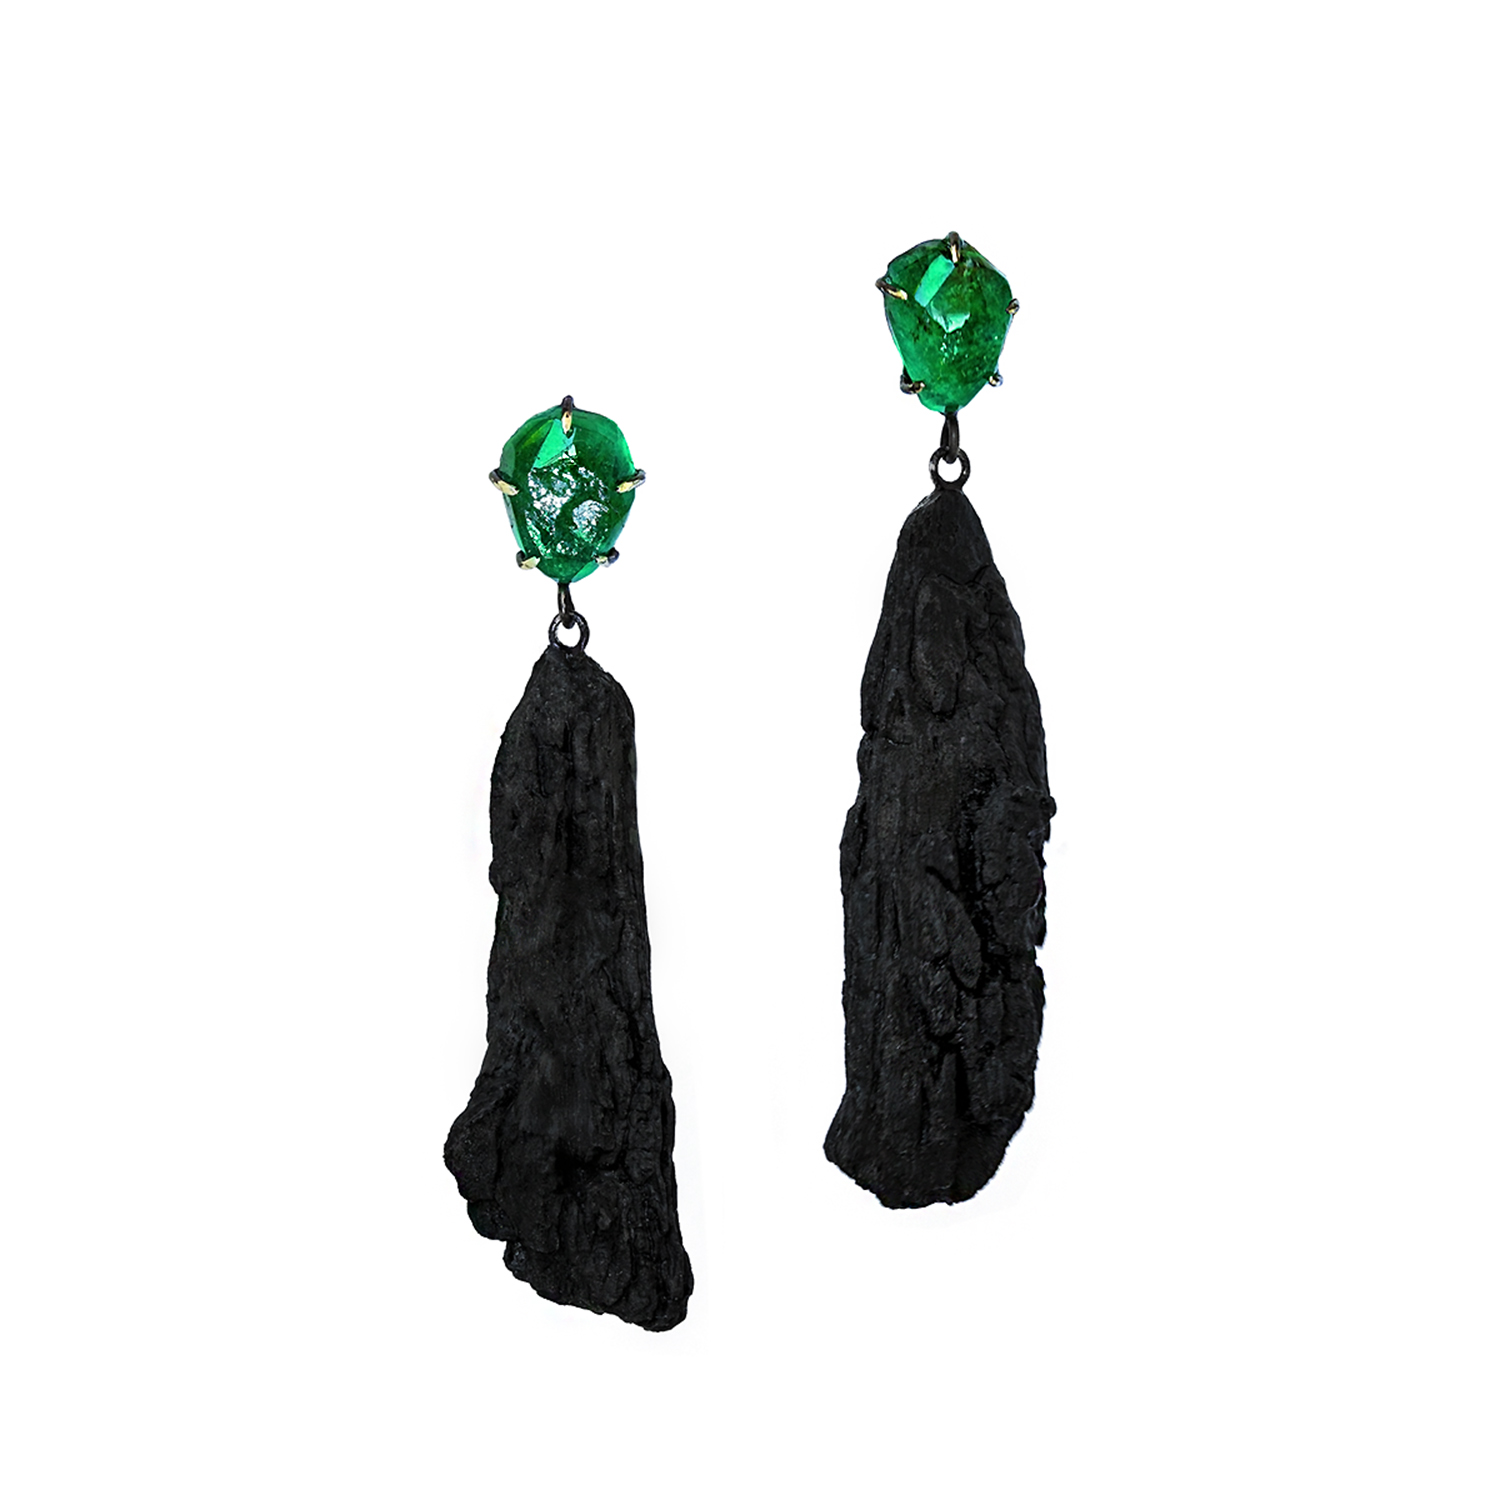 ENVY single edition earrings #3